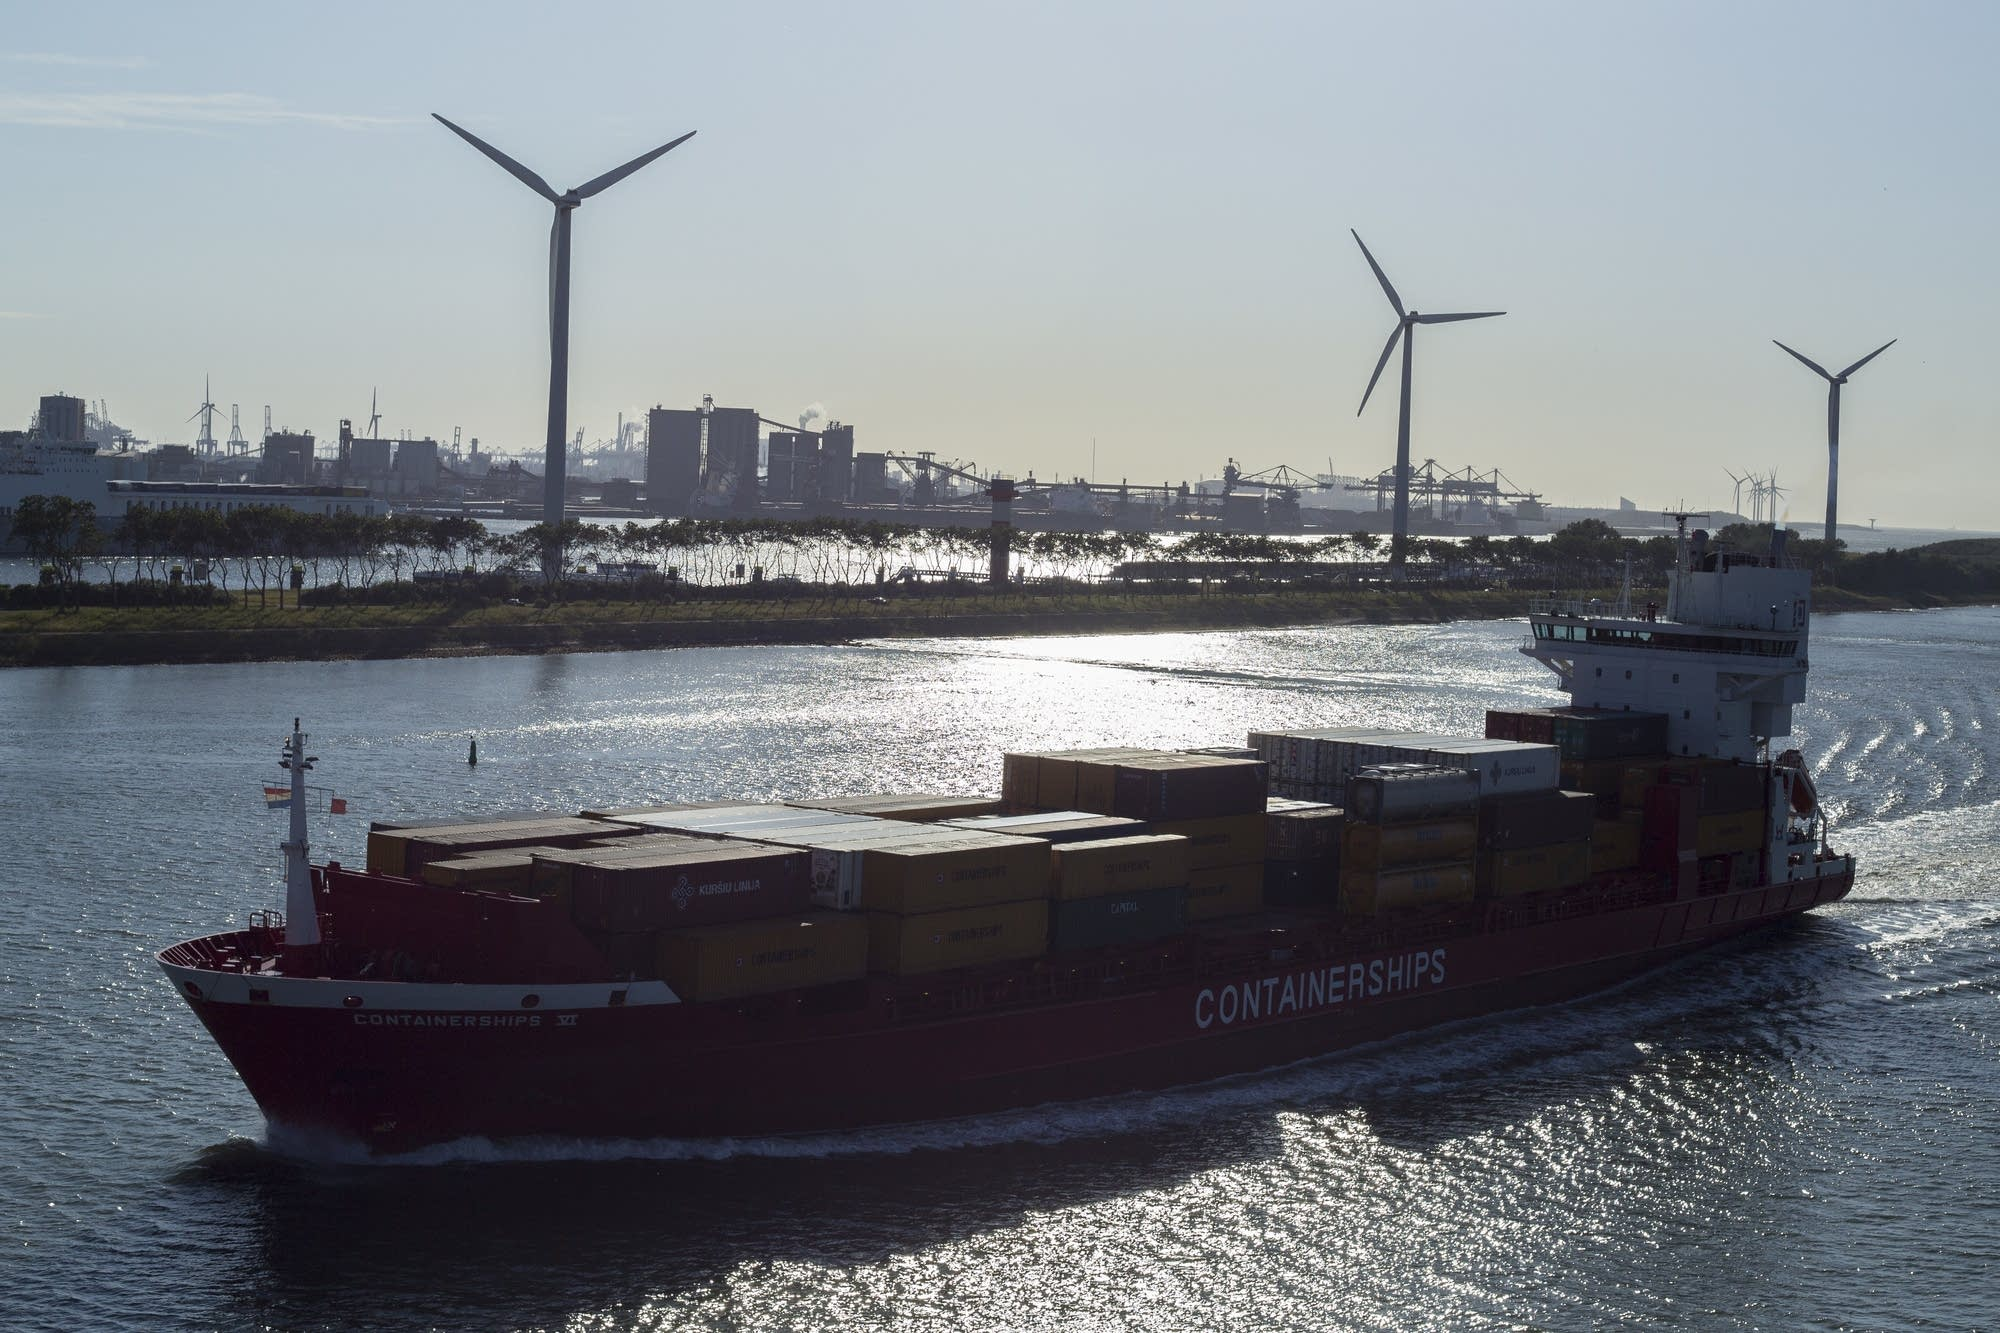 Leaving Rotterdam - container ship